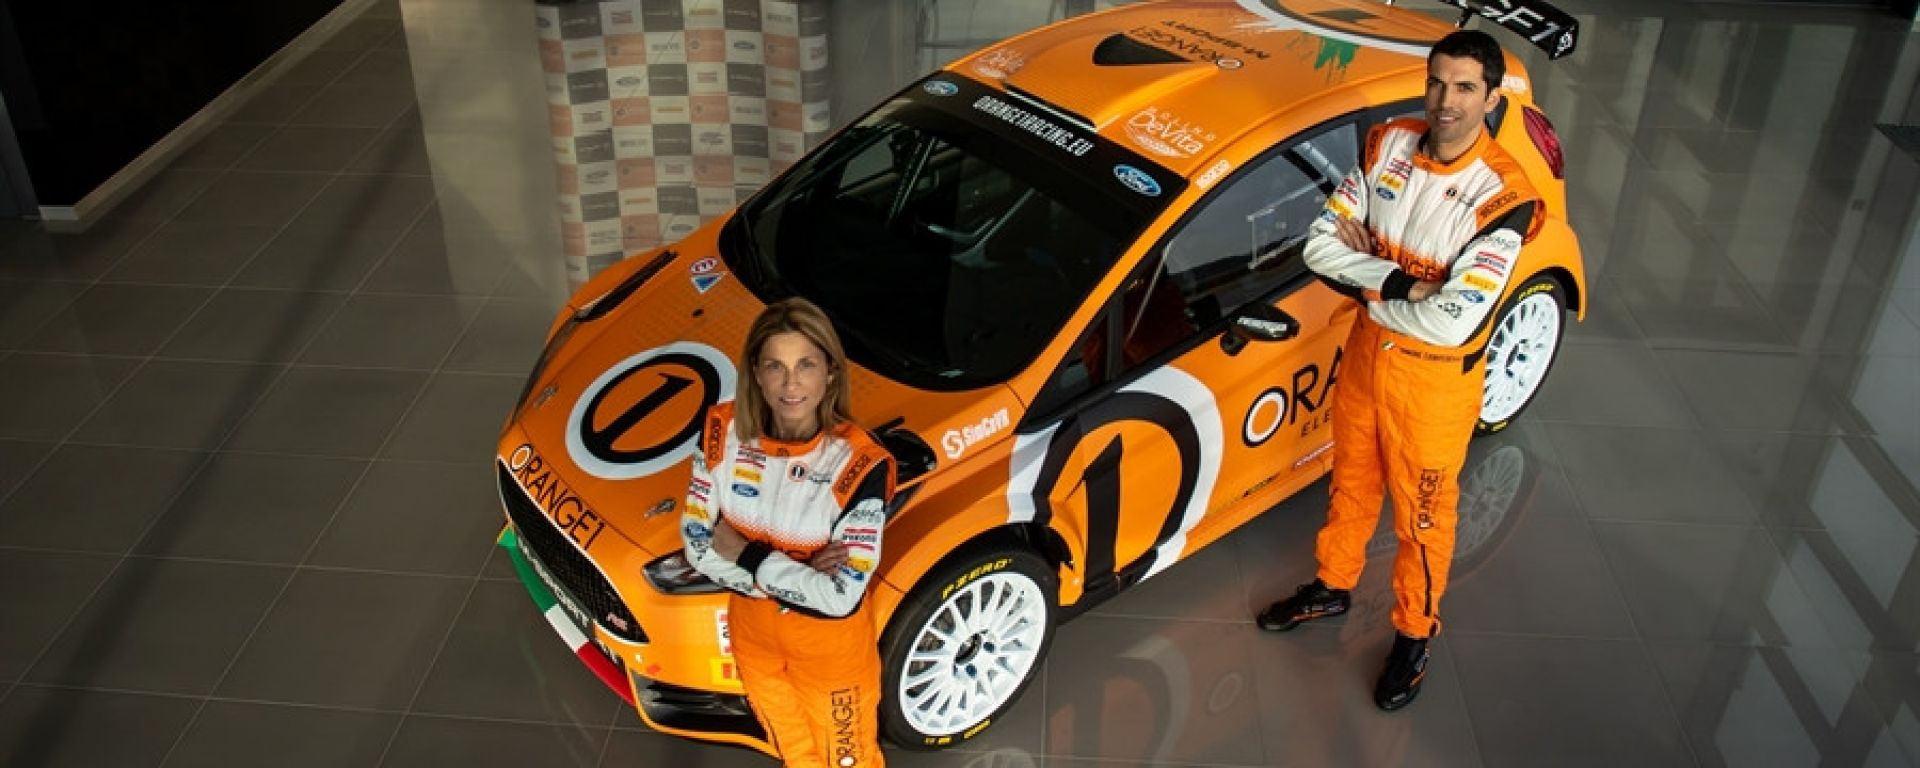 Ford Orange1 Racing: con Campedelli l'obbiettivo è vincere